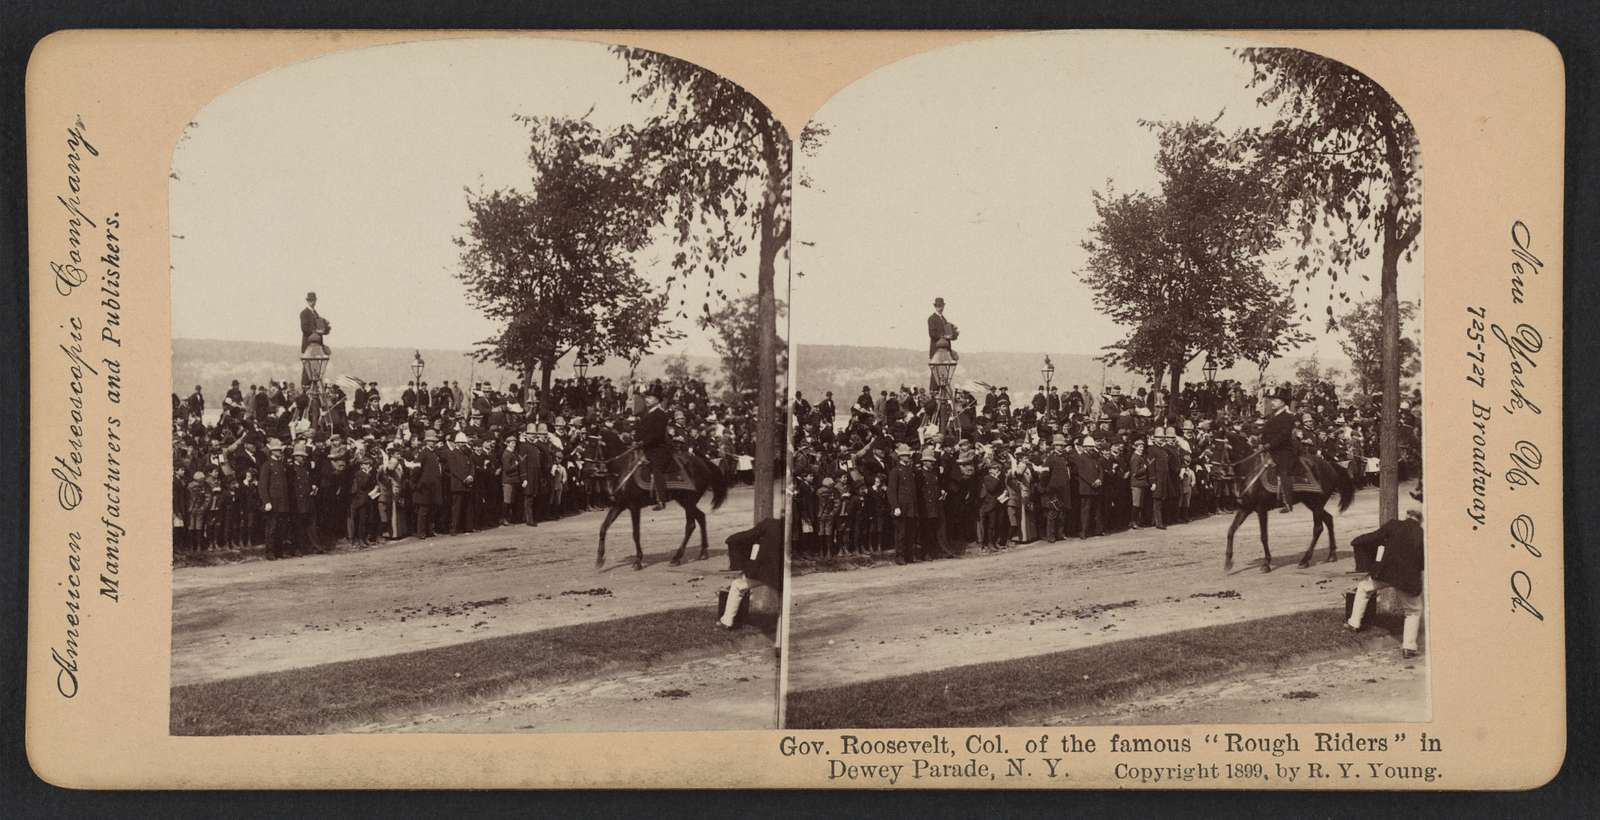 """Gov. Roosevelt, Col. of the famous """"Rough Riders"""" in Dewey Parade, N.Y."""